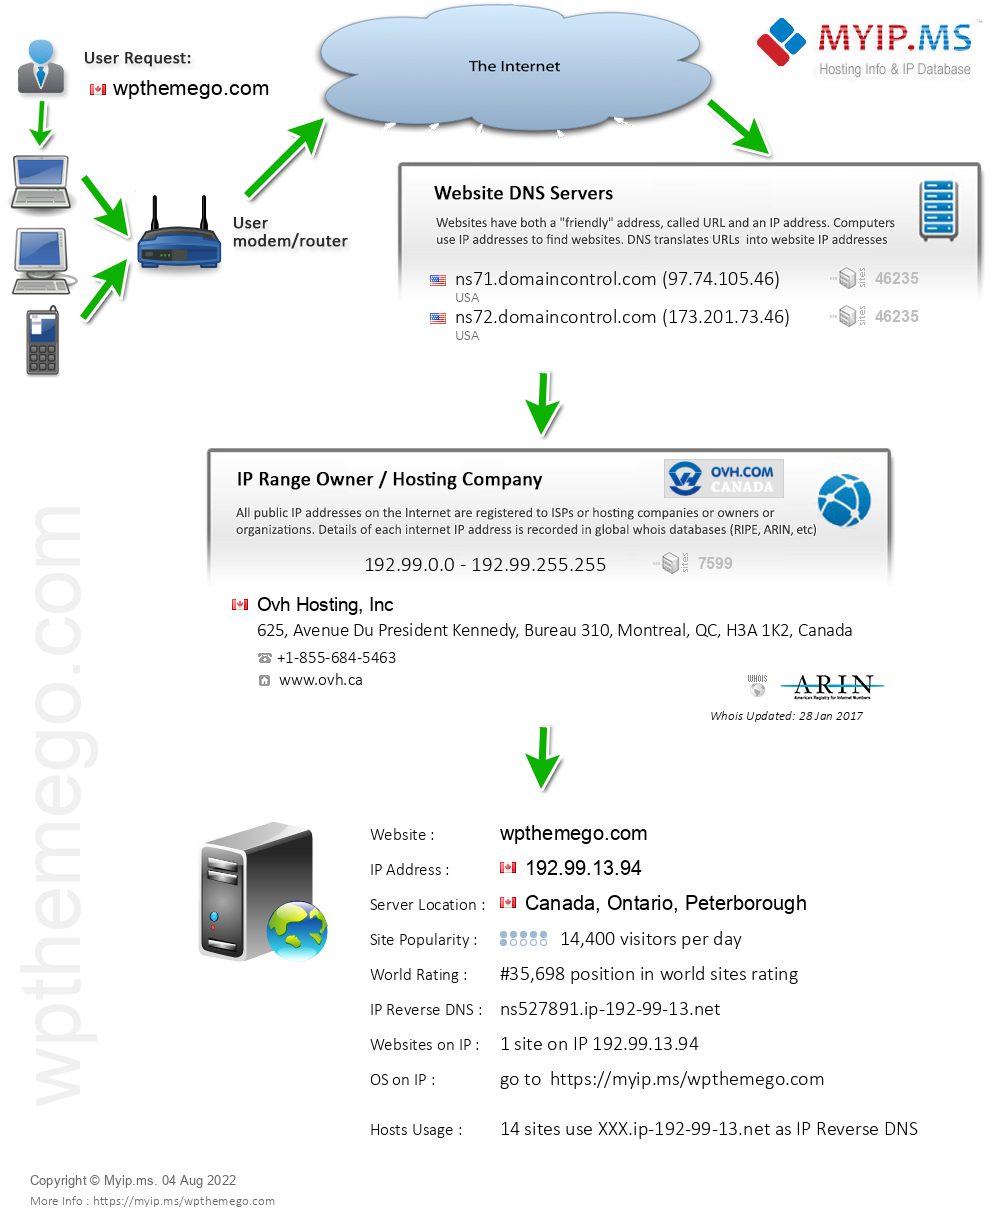 Wpthemego.com - Website Hosting Visual IP Diagram